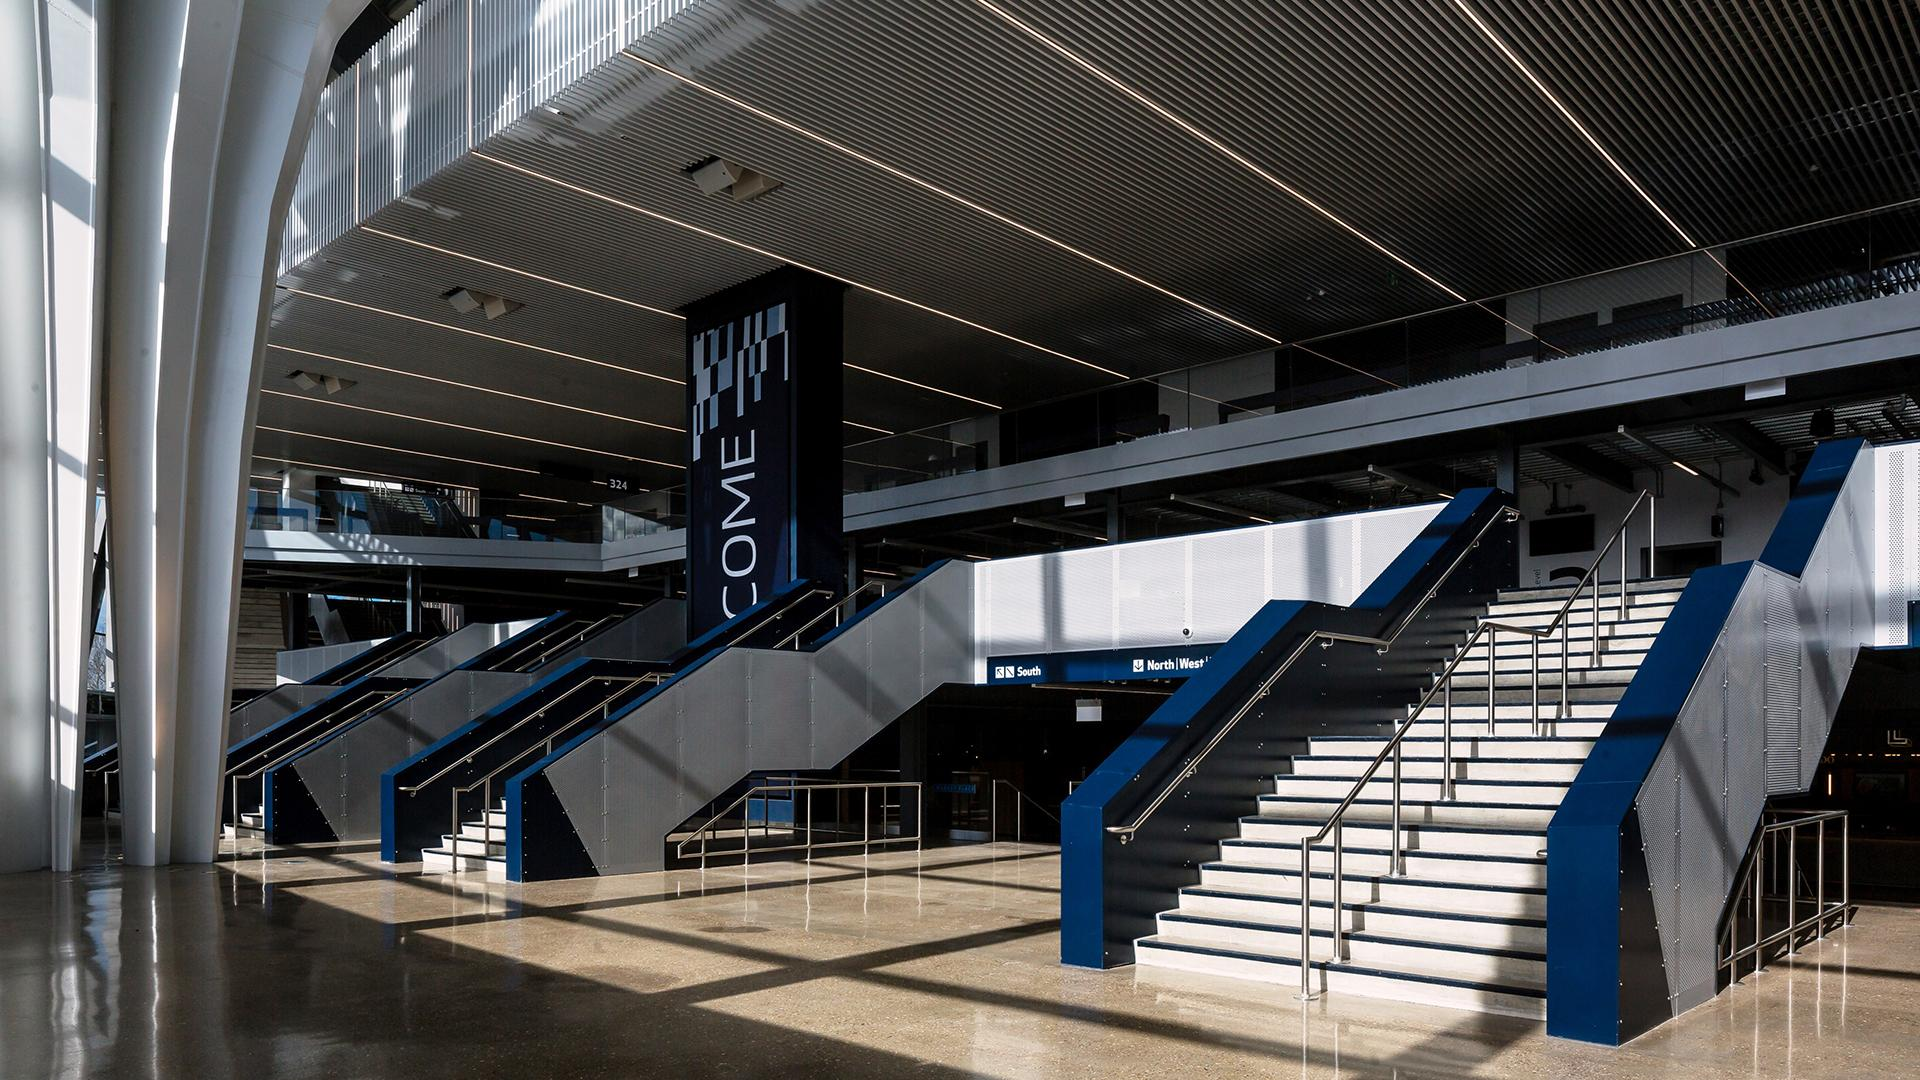 Check Out These Awesome Photos From Inside Tottenham S New Stadium Cartilage Free Captain